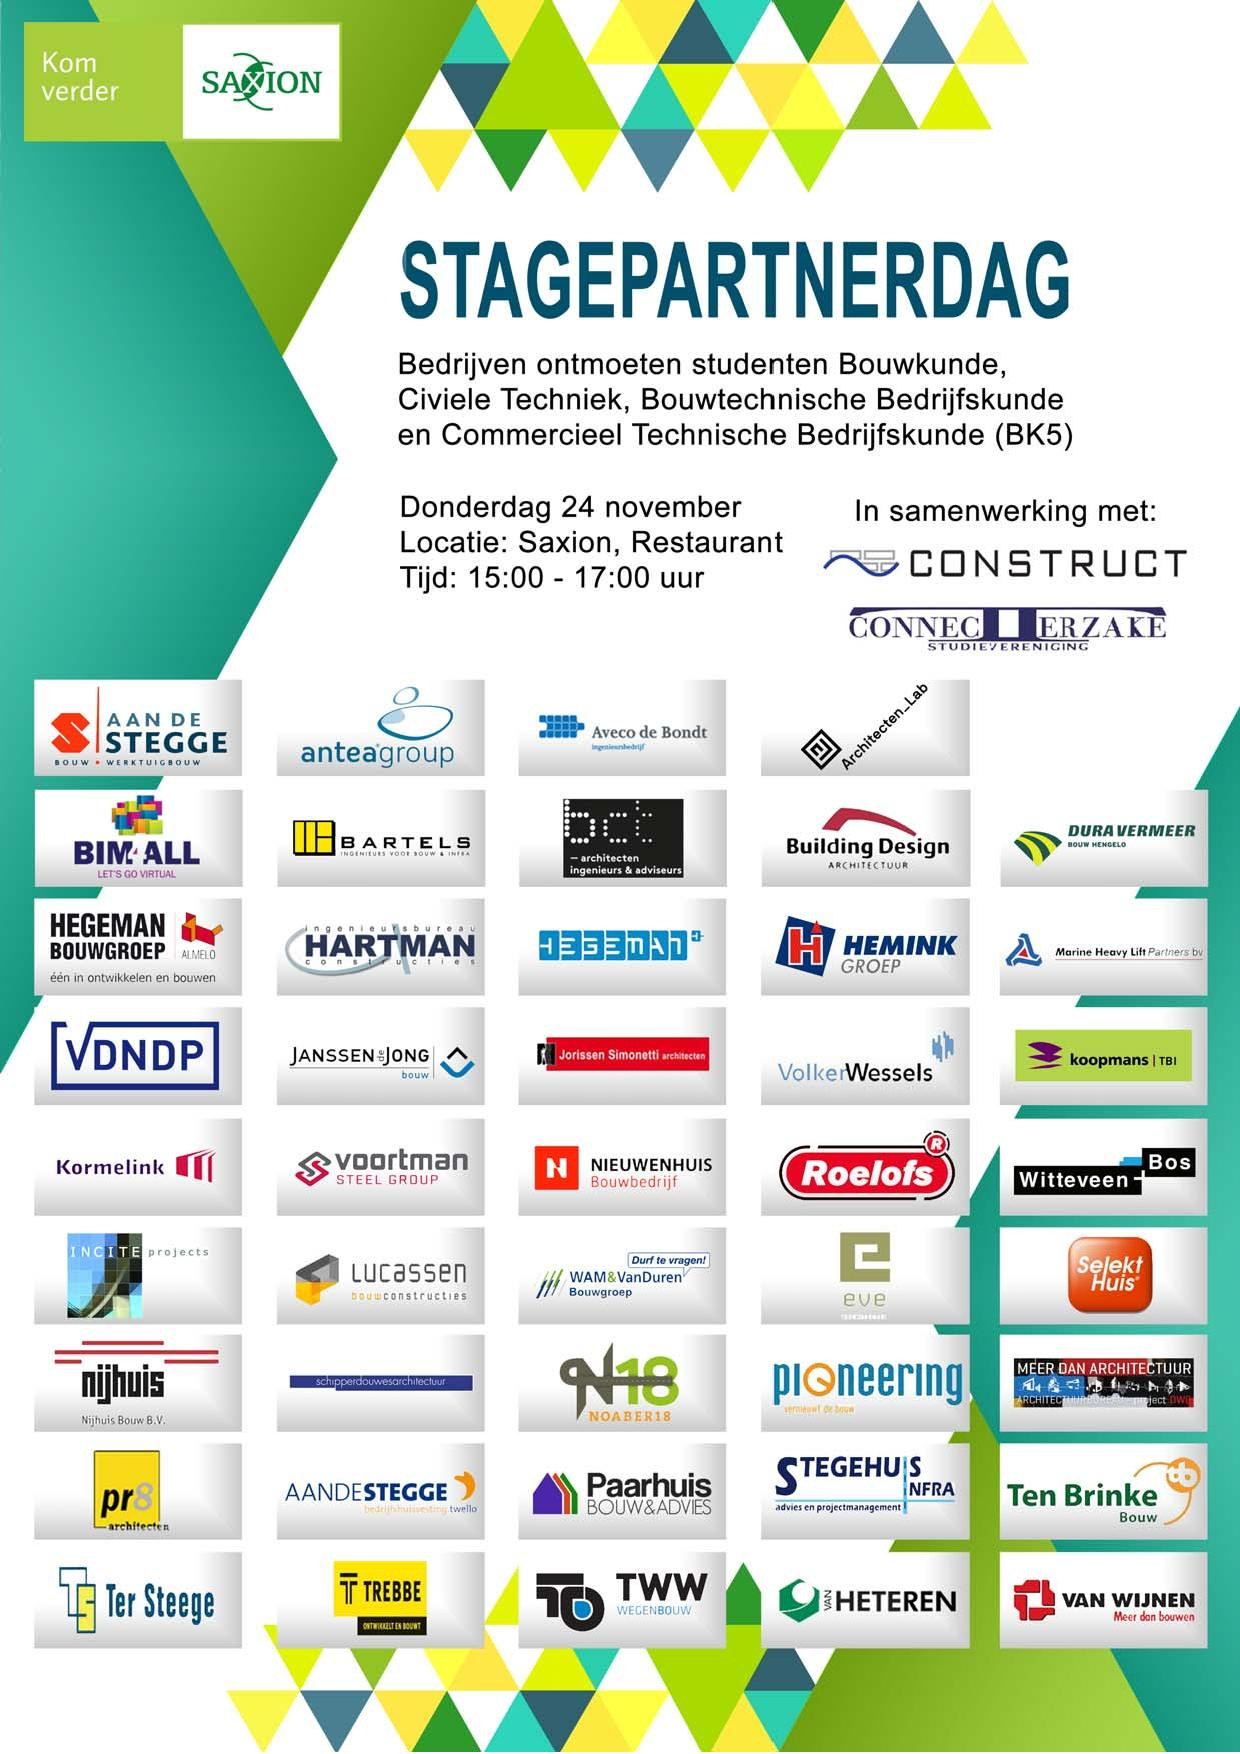 Stagepartnerdag 2016